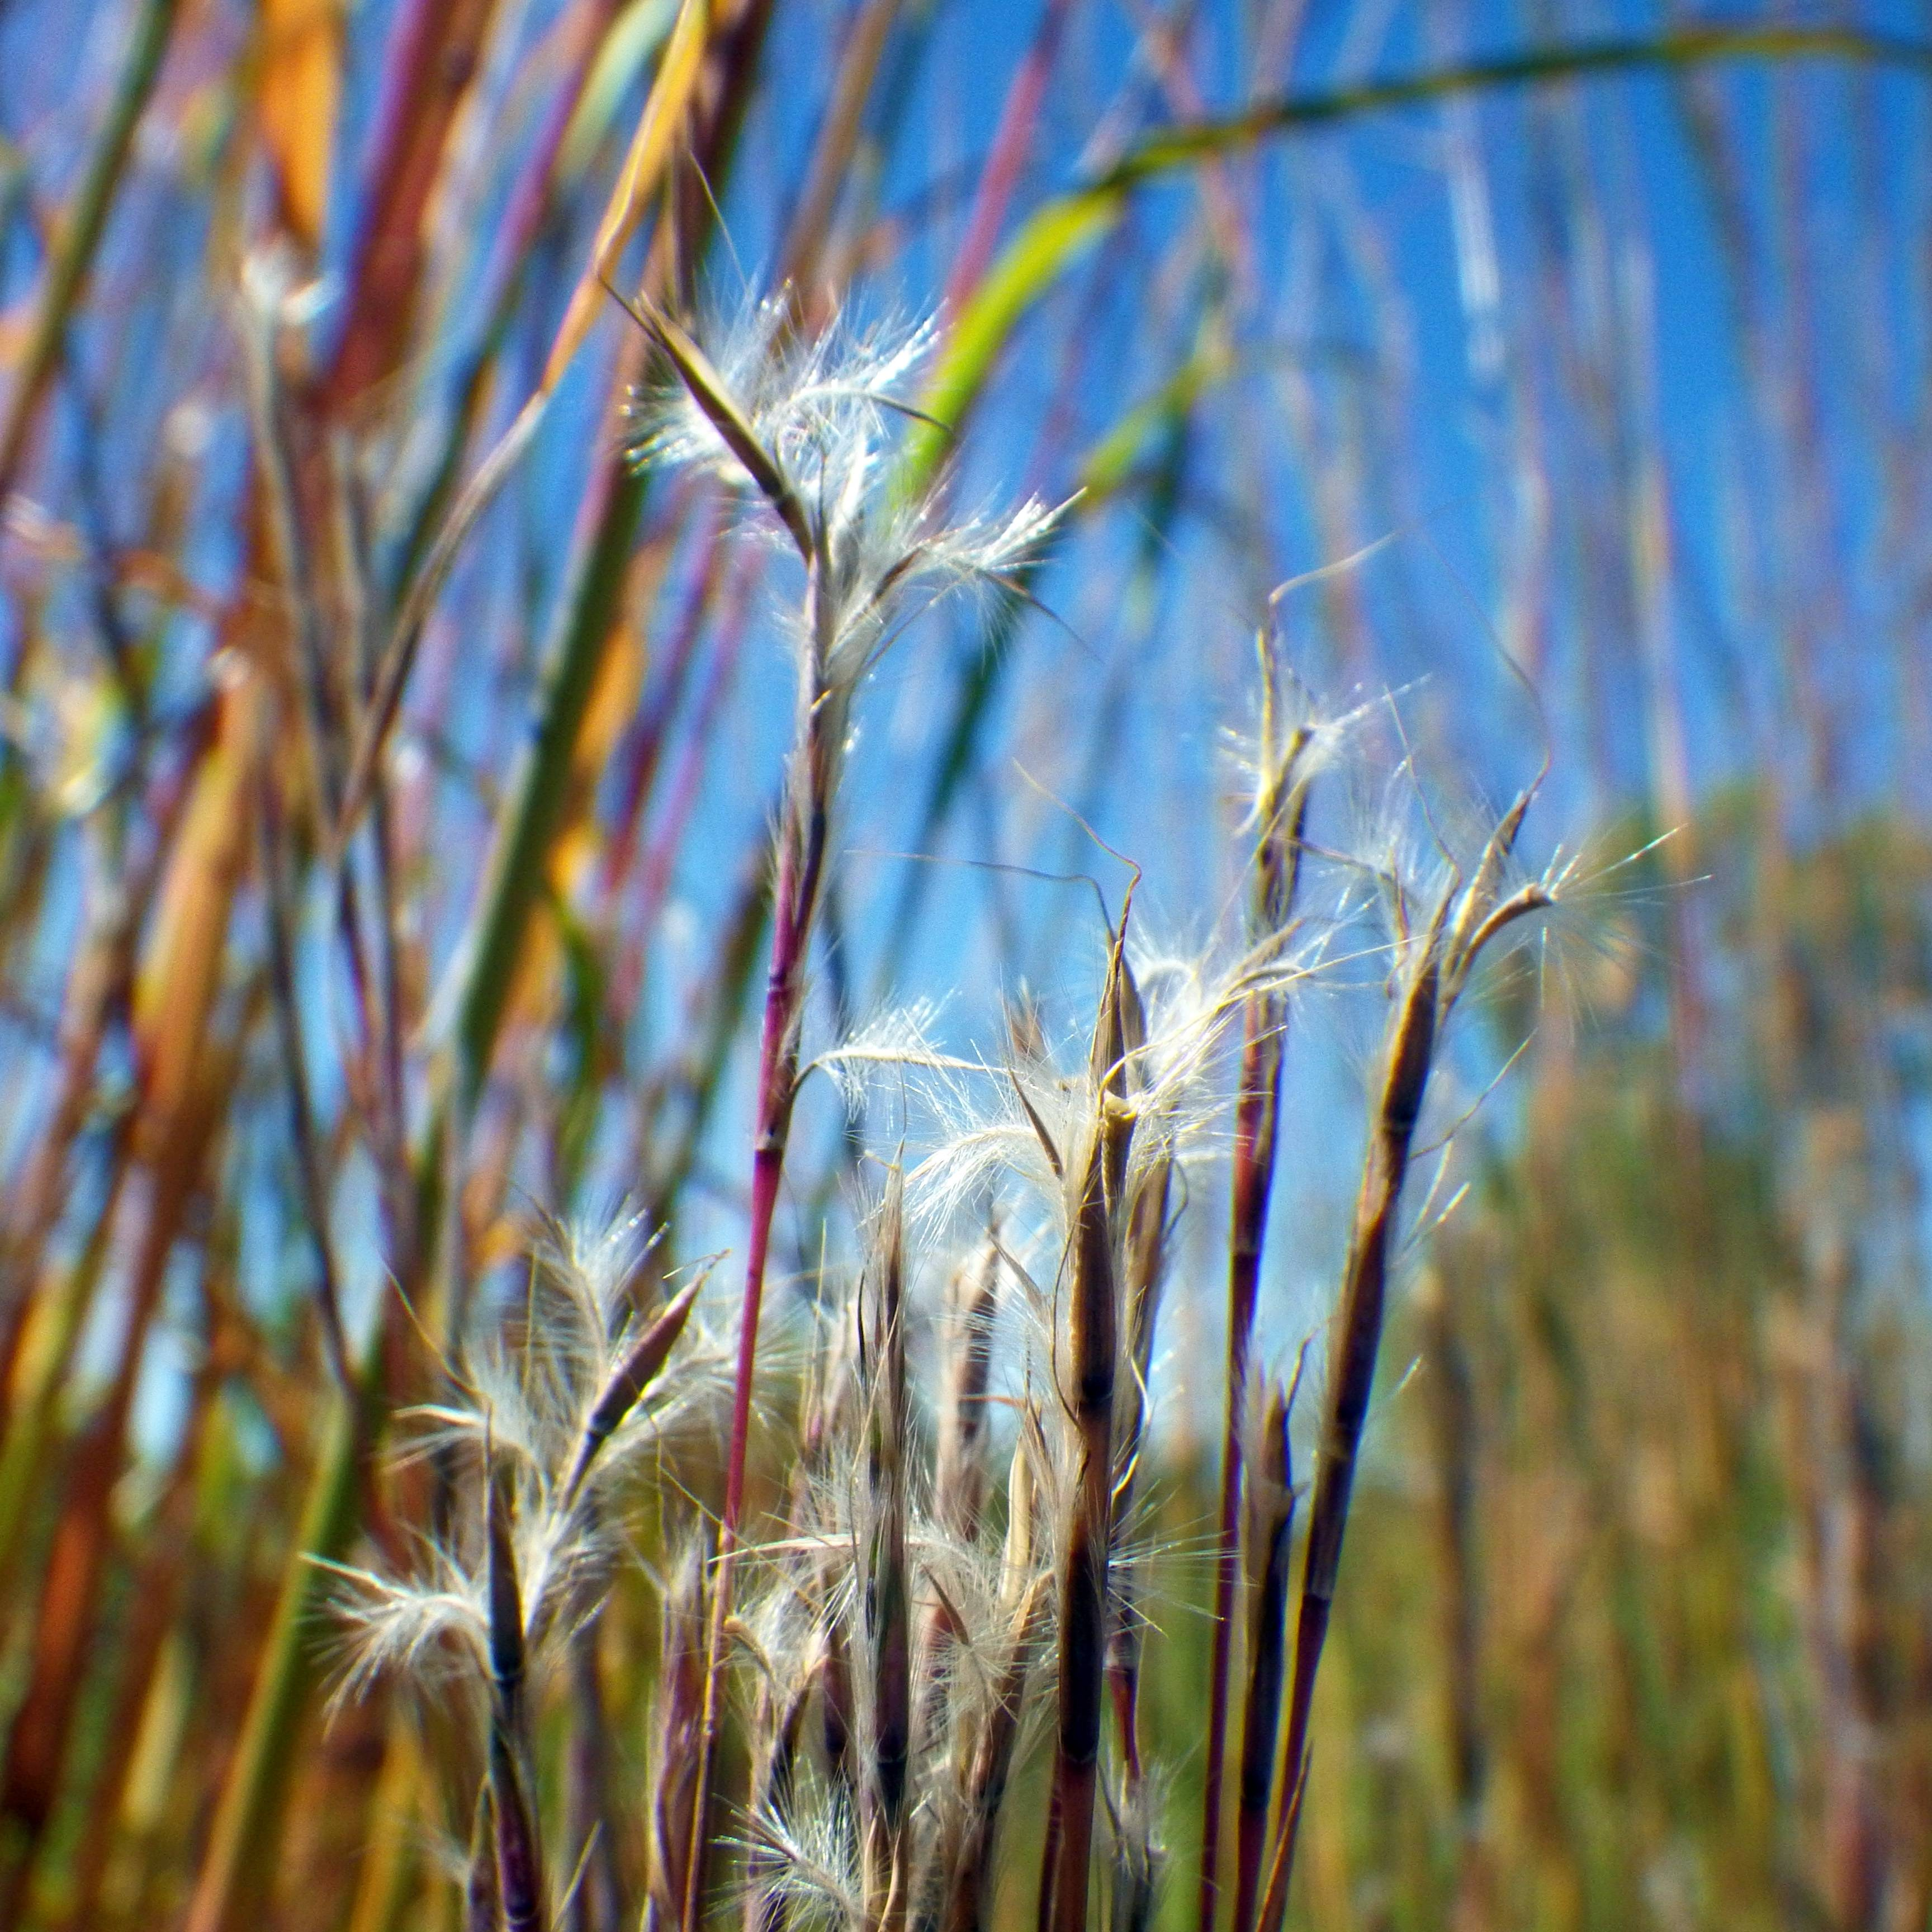 Bad plant? Good plant? Little bluestem is a quality native grass of Illinois prairies.